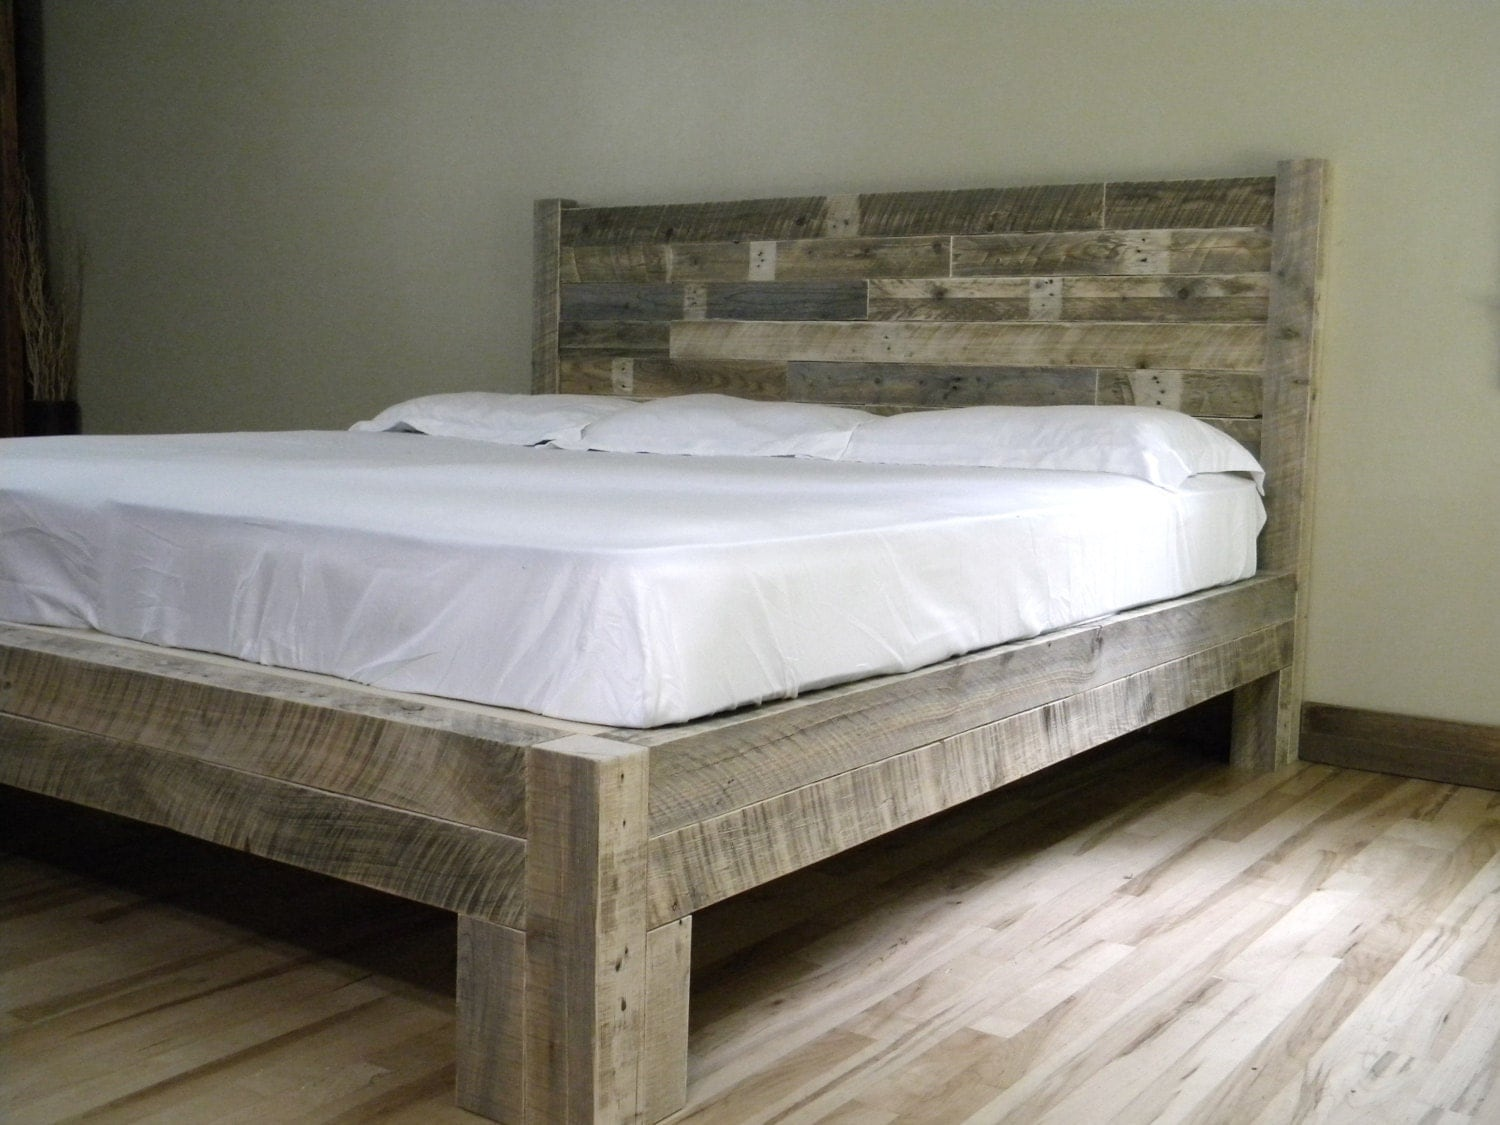 build your own king platform bed frame | Woodworking Beginners Guide